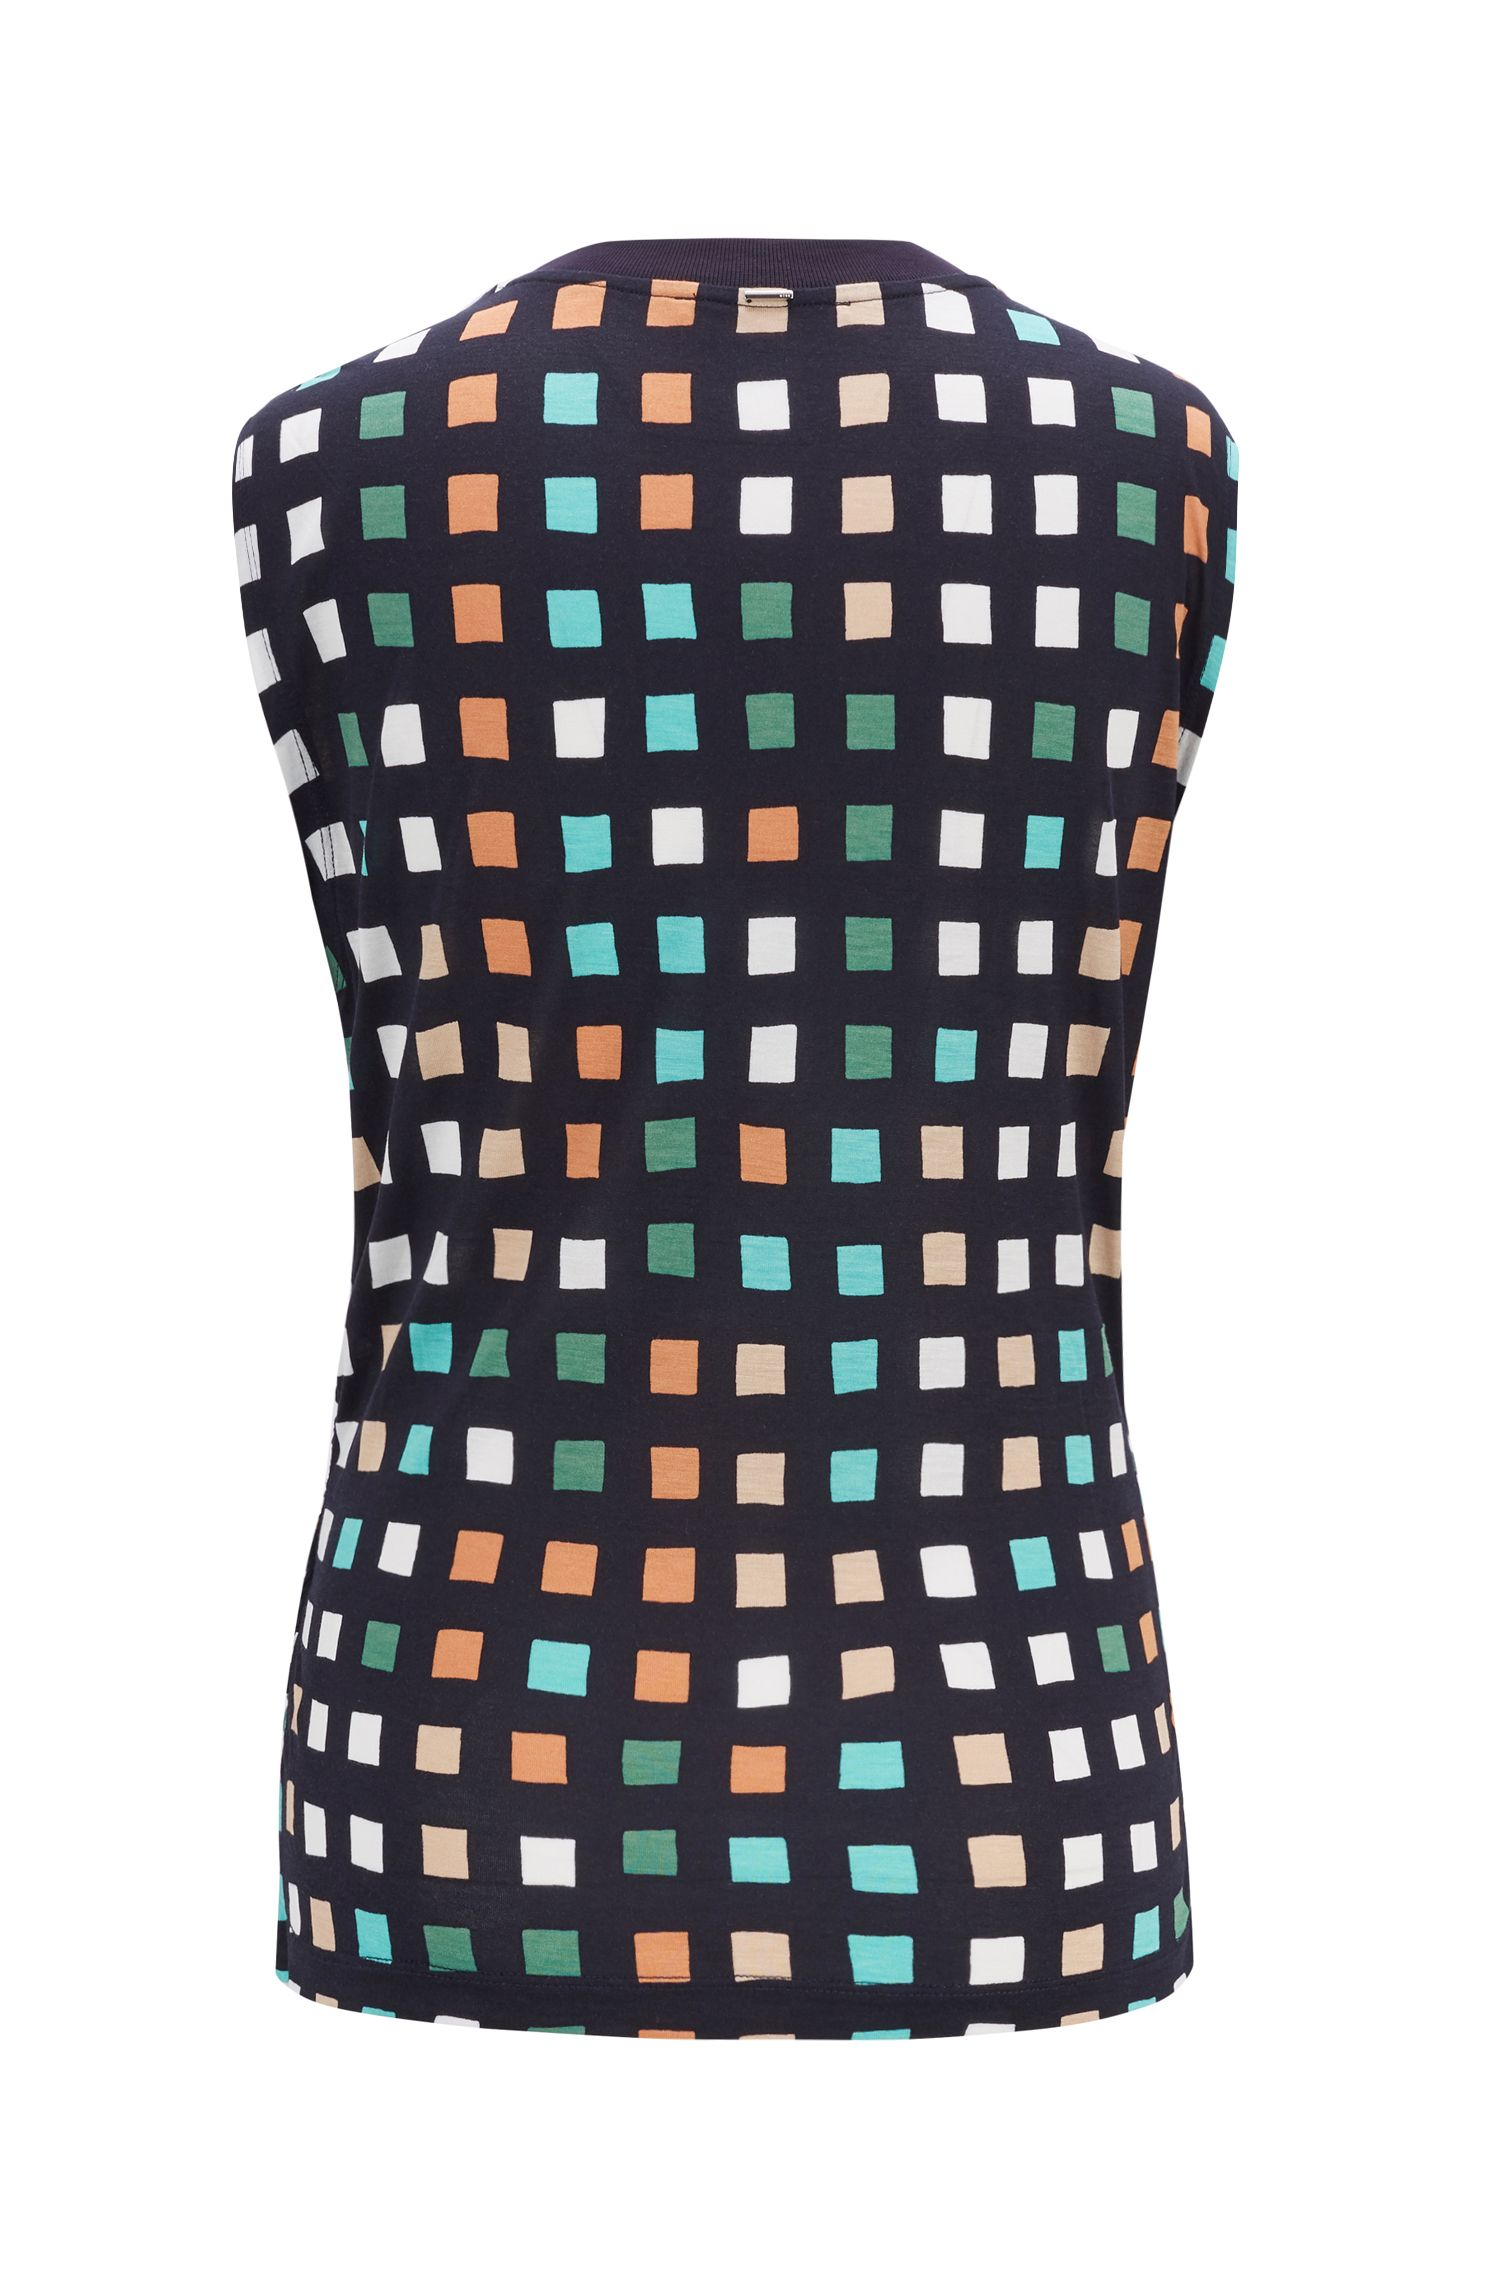 Sleeveless jersey top with ruched front and printed check, Patterned